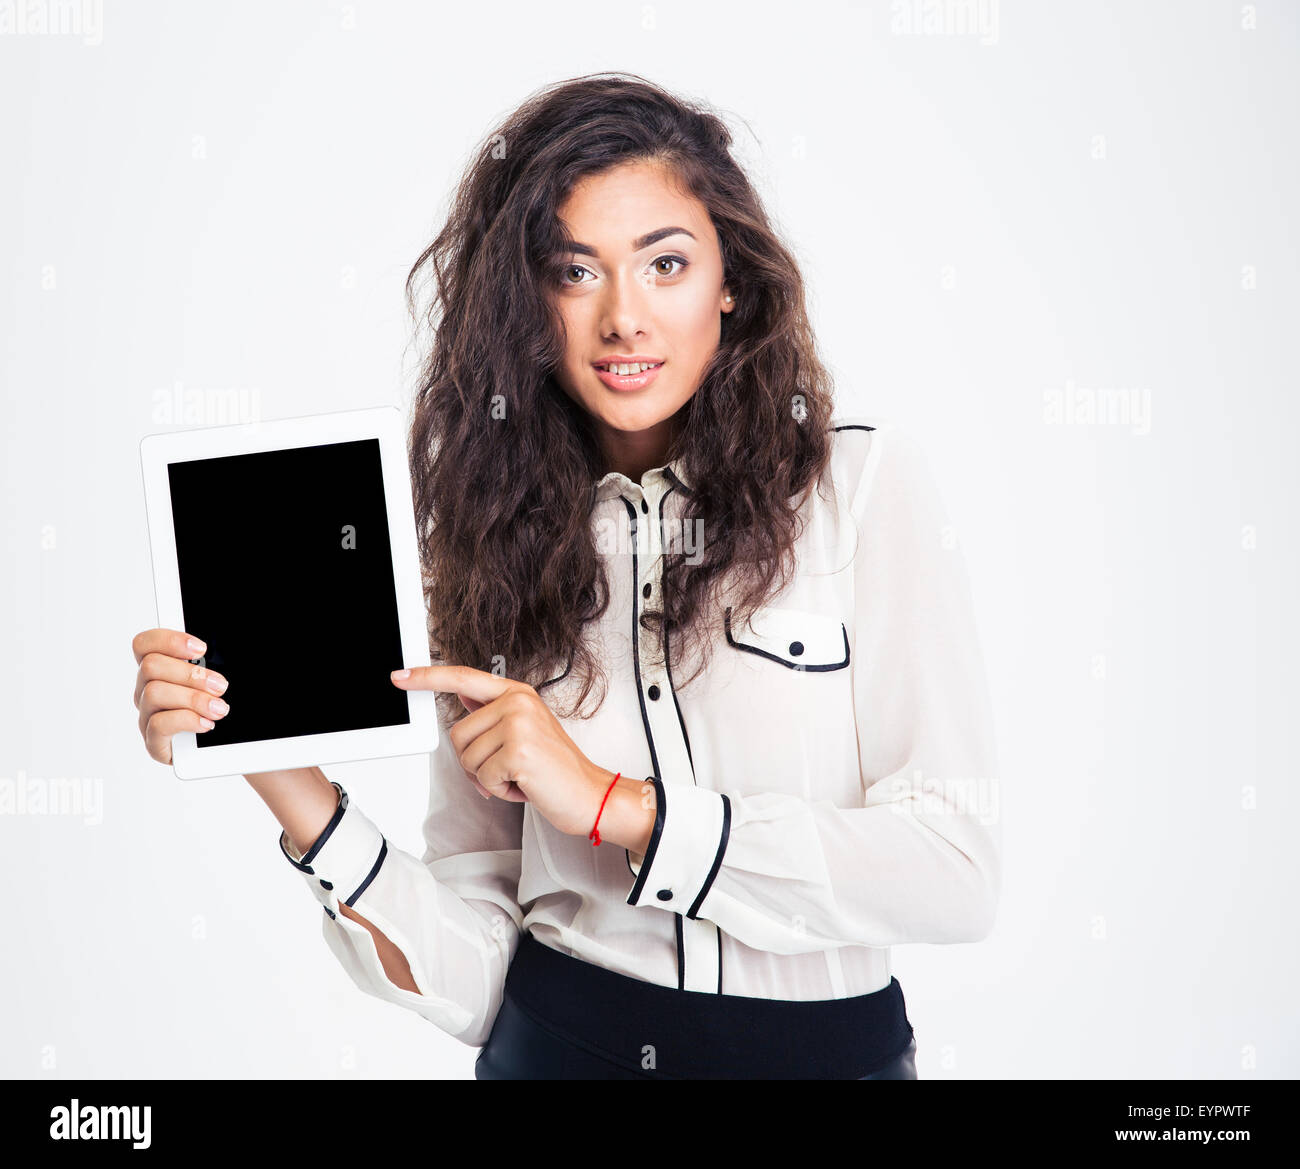 Happy businesswoman pointing finger on tablet computer isolated on a white background. Looking at camera - Stock Image